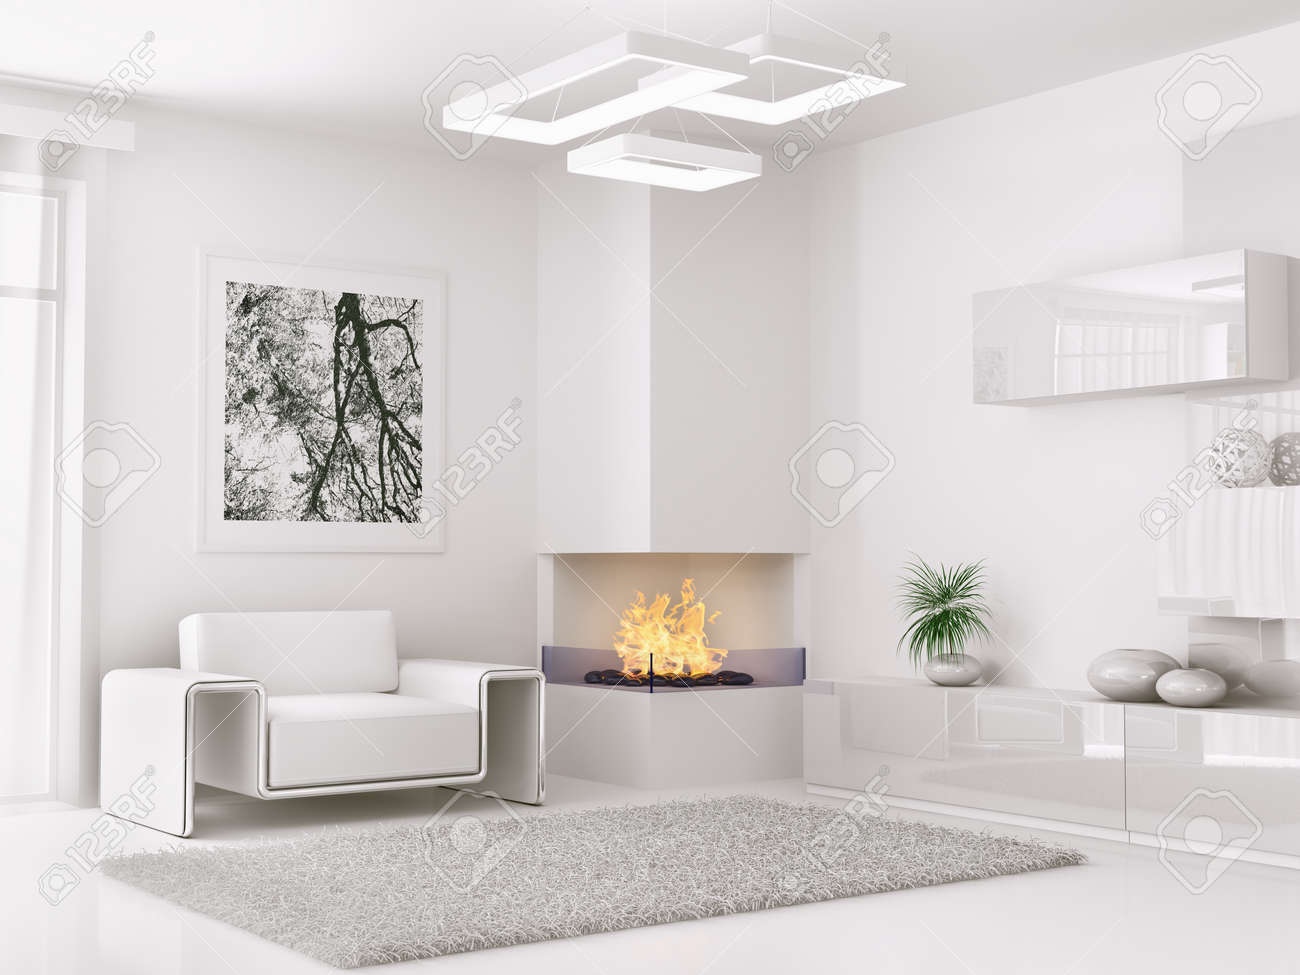 Modern White Room interior of modern white room with armchair and fireplace 3d